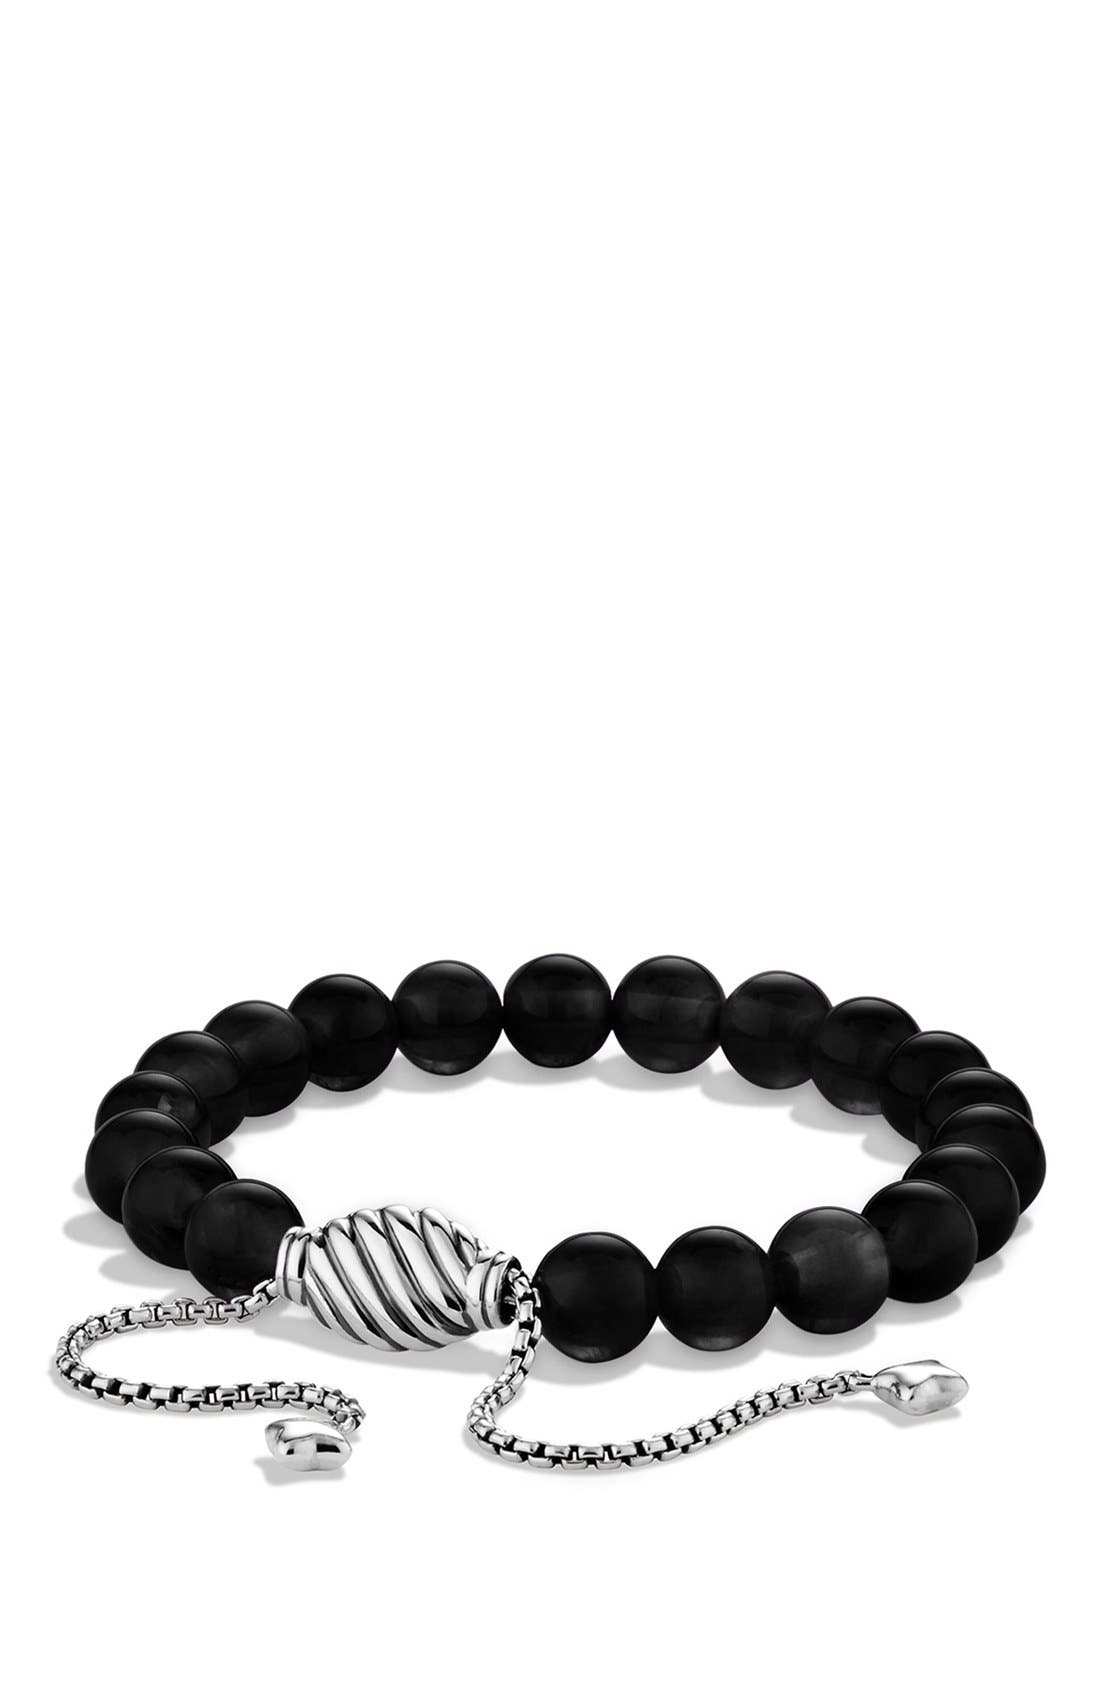 Main Image - David Yurman 'Spiritual Beads' Bracelet